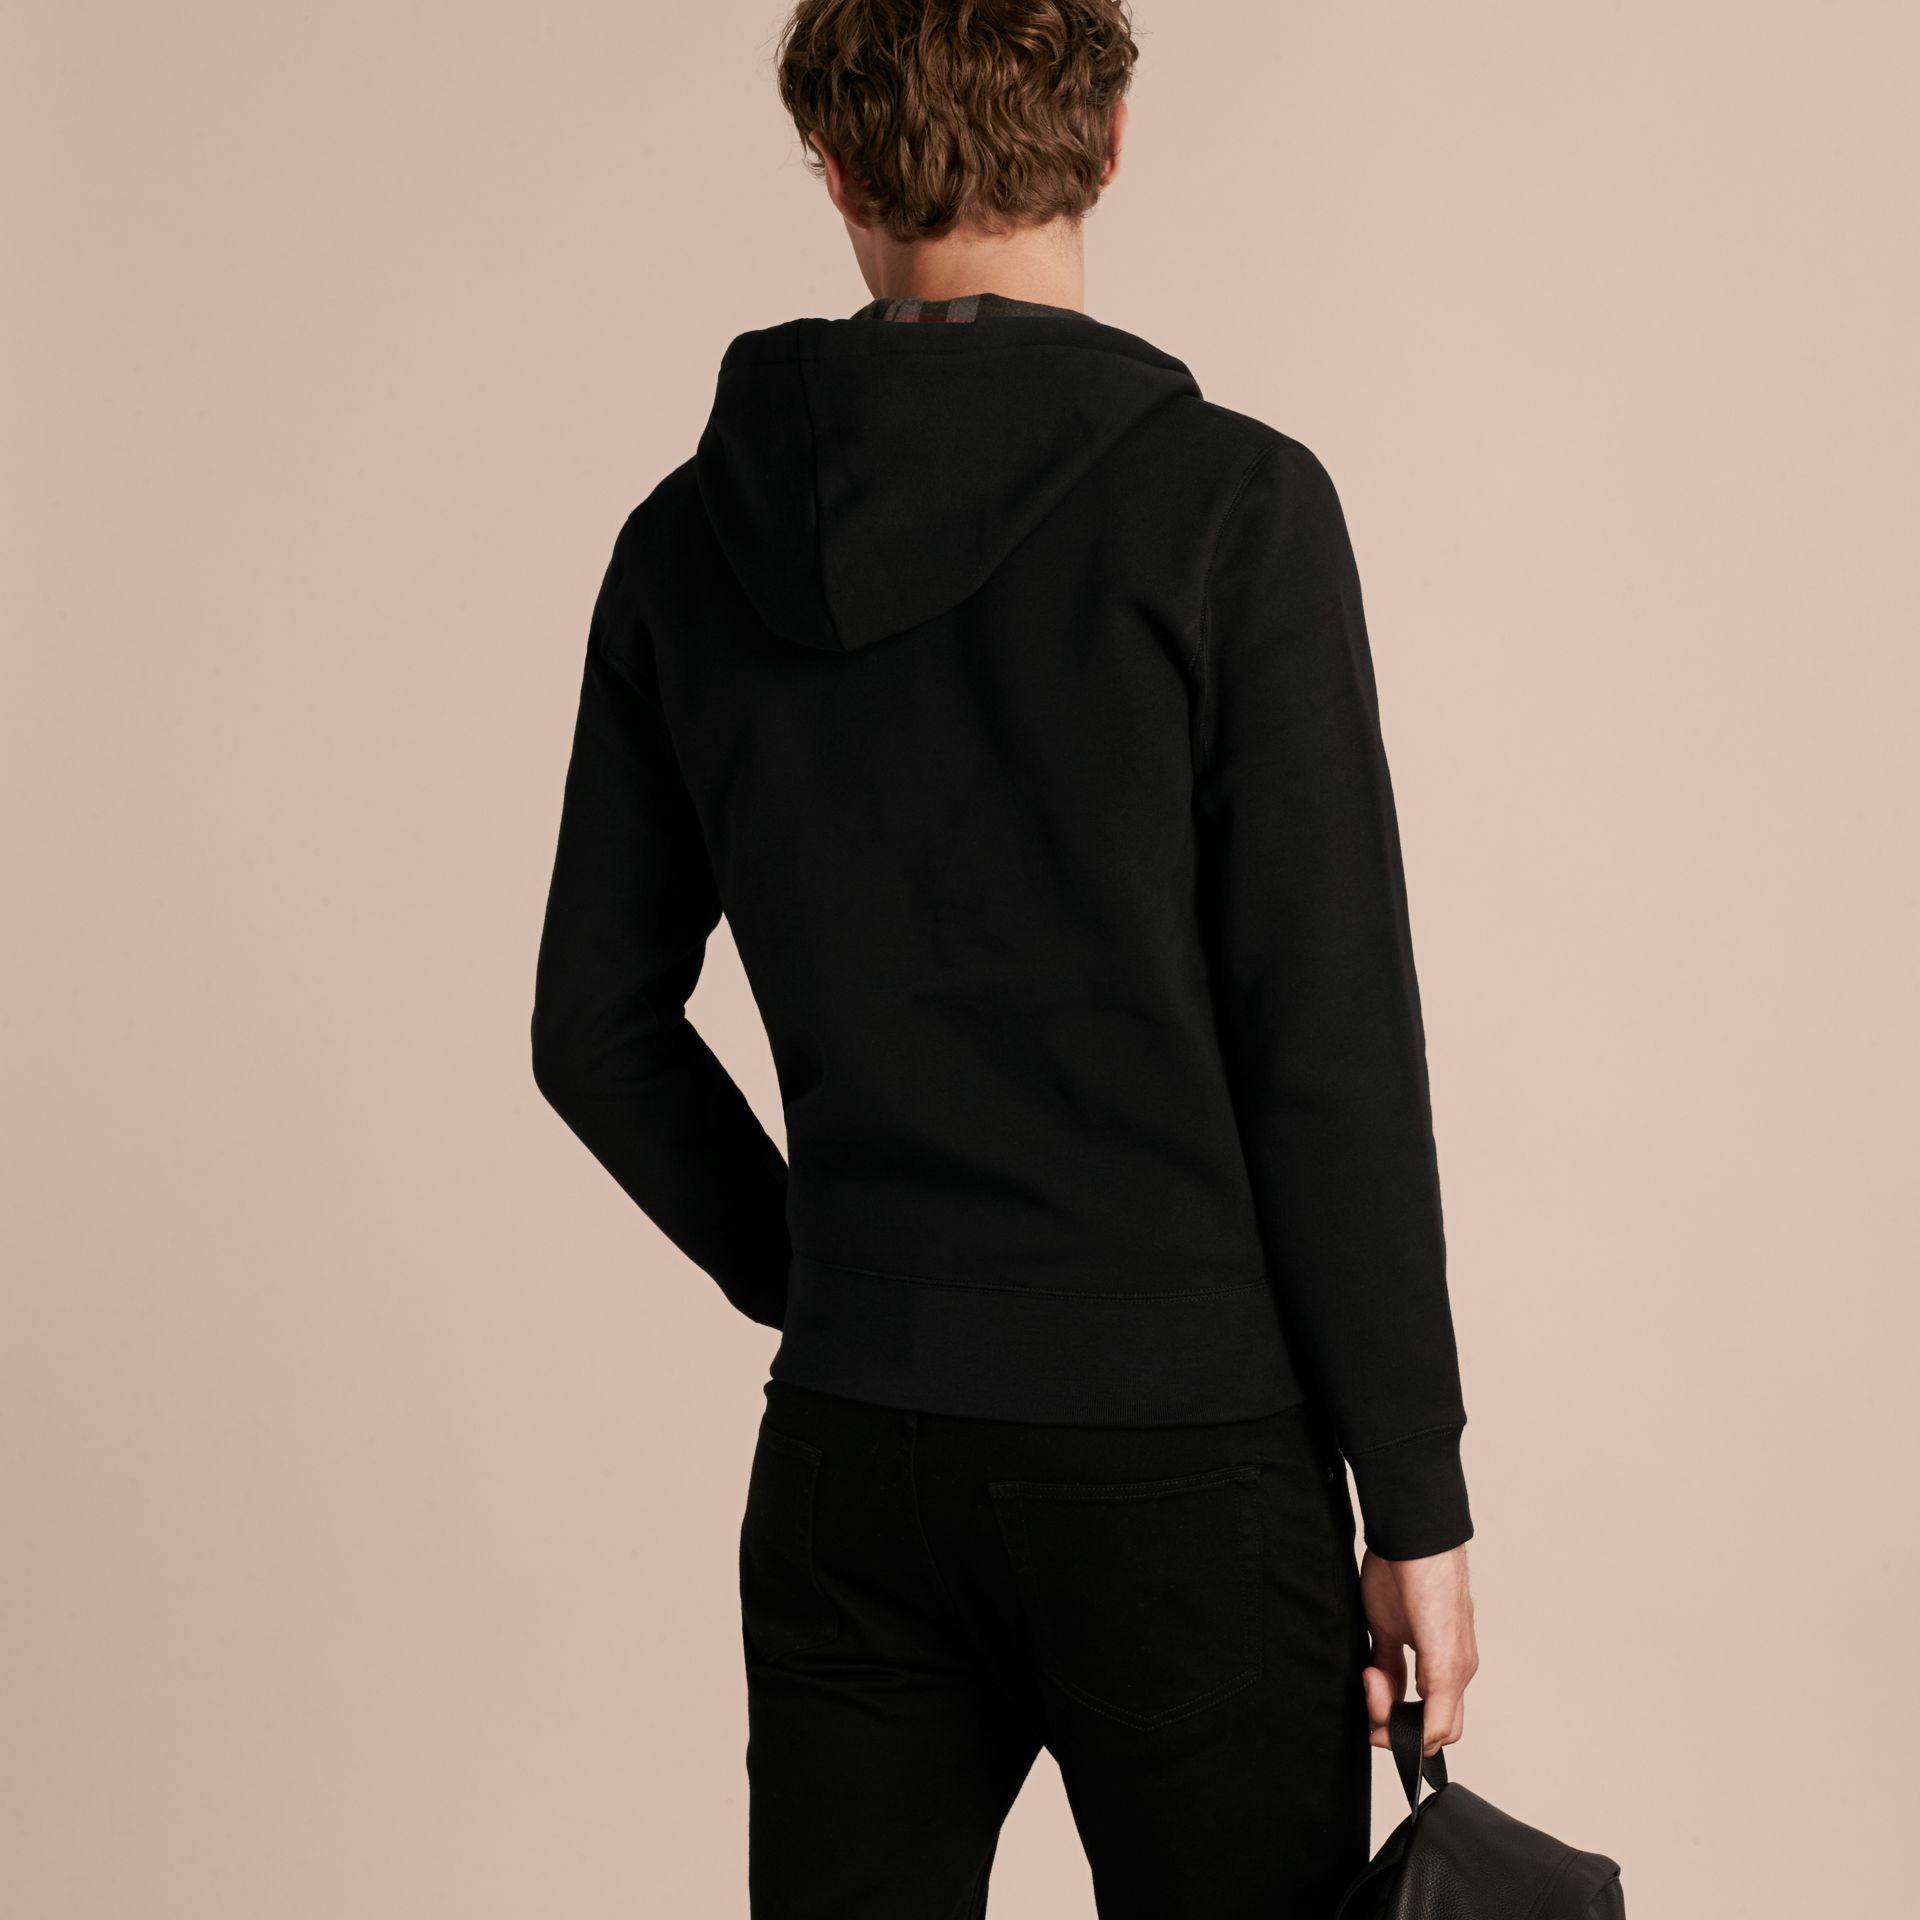 Black Hooded Cotton Jersey Top Black - gallery image 3